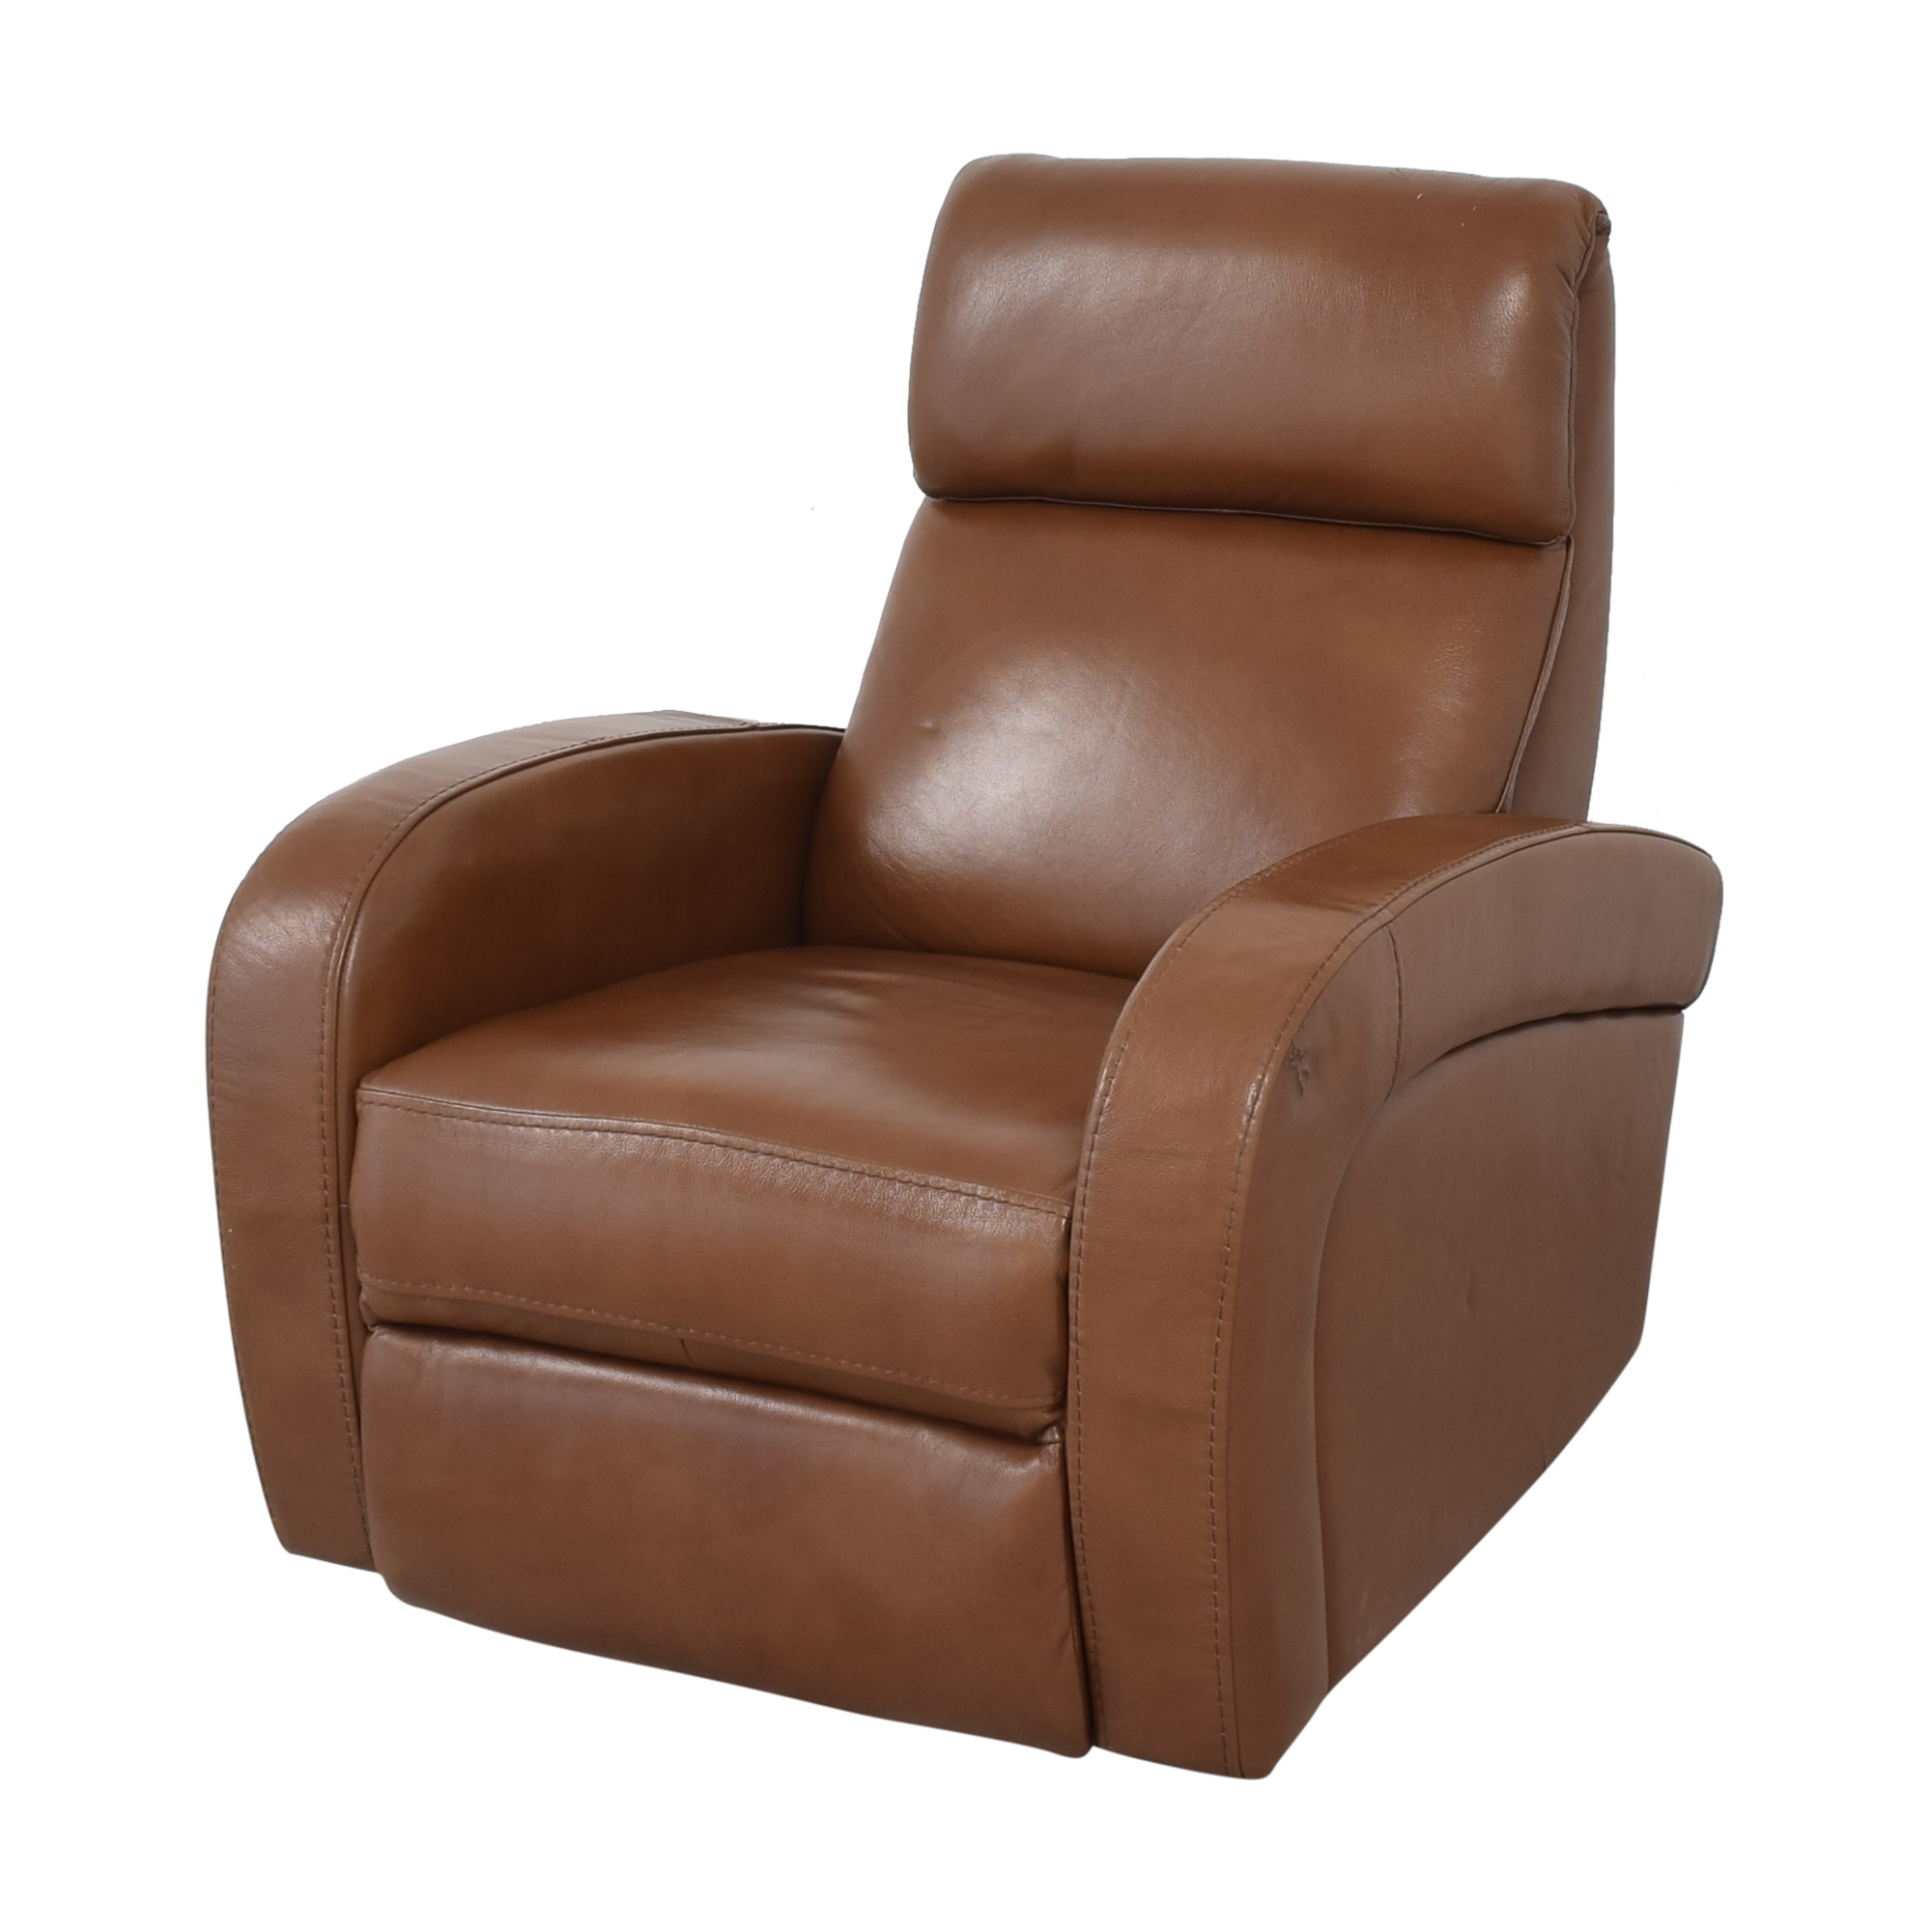 Macy's Manual Swivel Glider Recliner Chairs